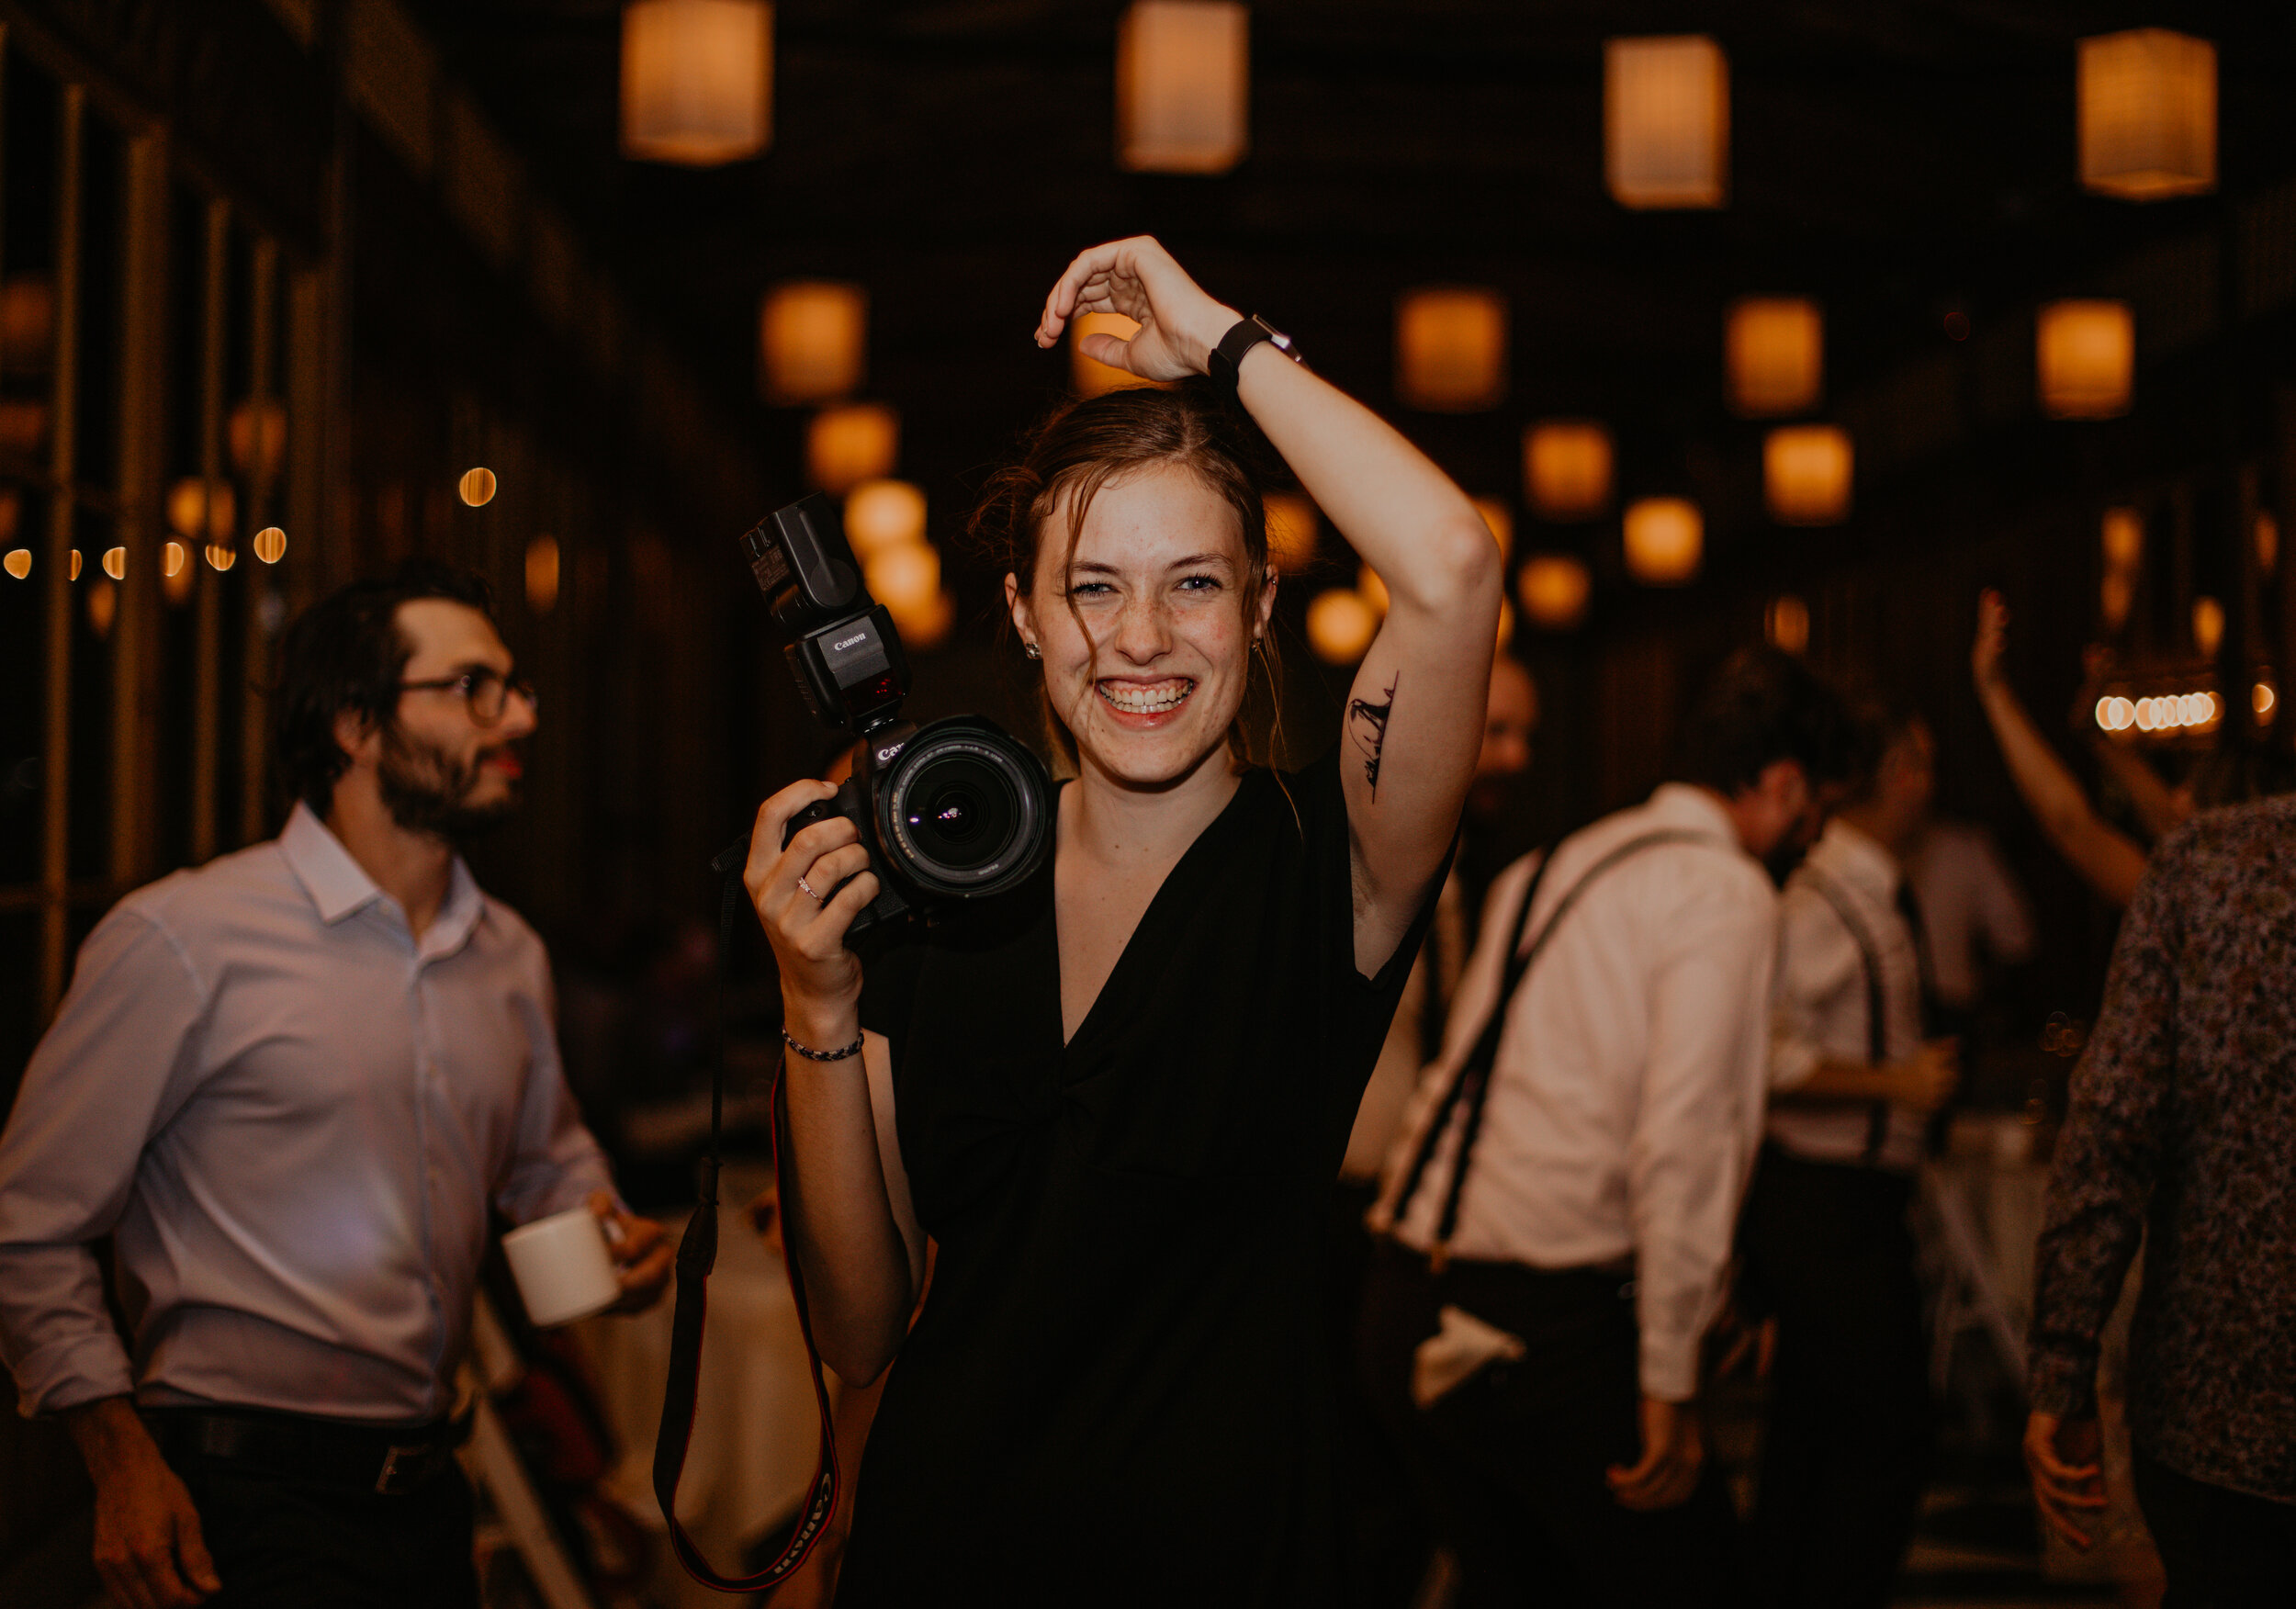 """hiiii, friend! I'm Danielle! - & I'm so happy you made it here.I'm a PNW-based photog who's here to serve & support YOU + be your hypegirl! I shoot weddings, elopements, seniors, & I celebrate every kind of love. I thrive most with people who live authentically, joyfully, & aren't afraid to be messy! have a look around and head over to my """"contact"""" page when you're ready to begin this beautiful journey with me!❤️"""